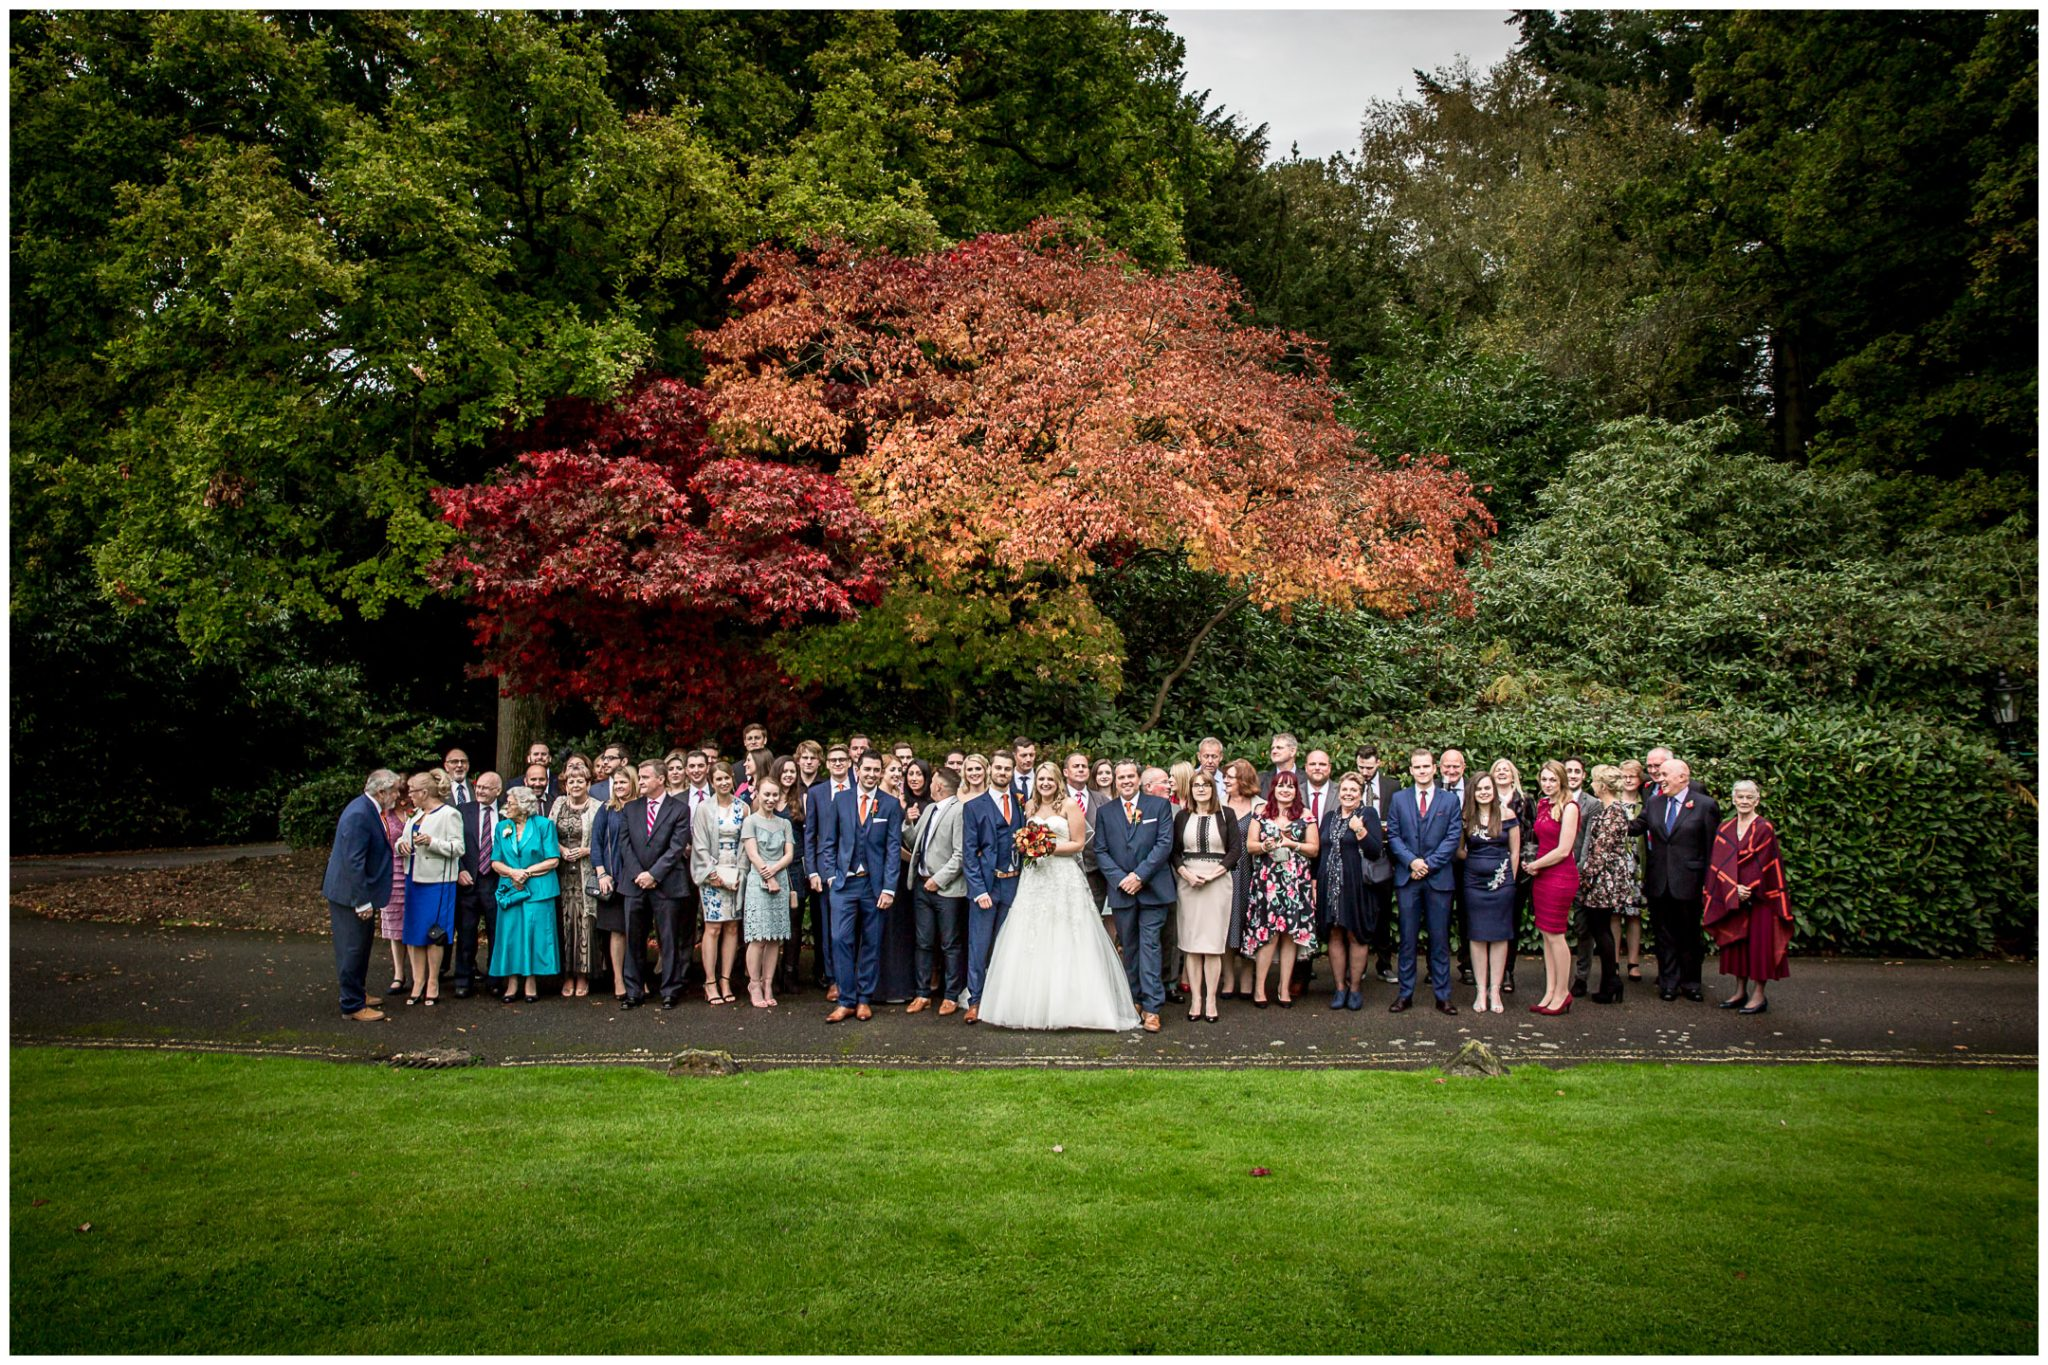 Audleys Wood wedding photograhy group photo by front lawn